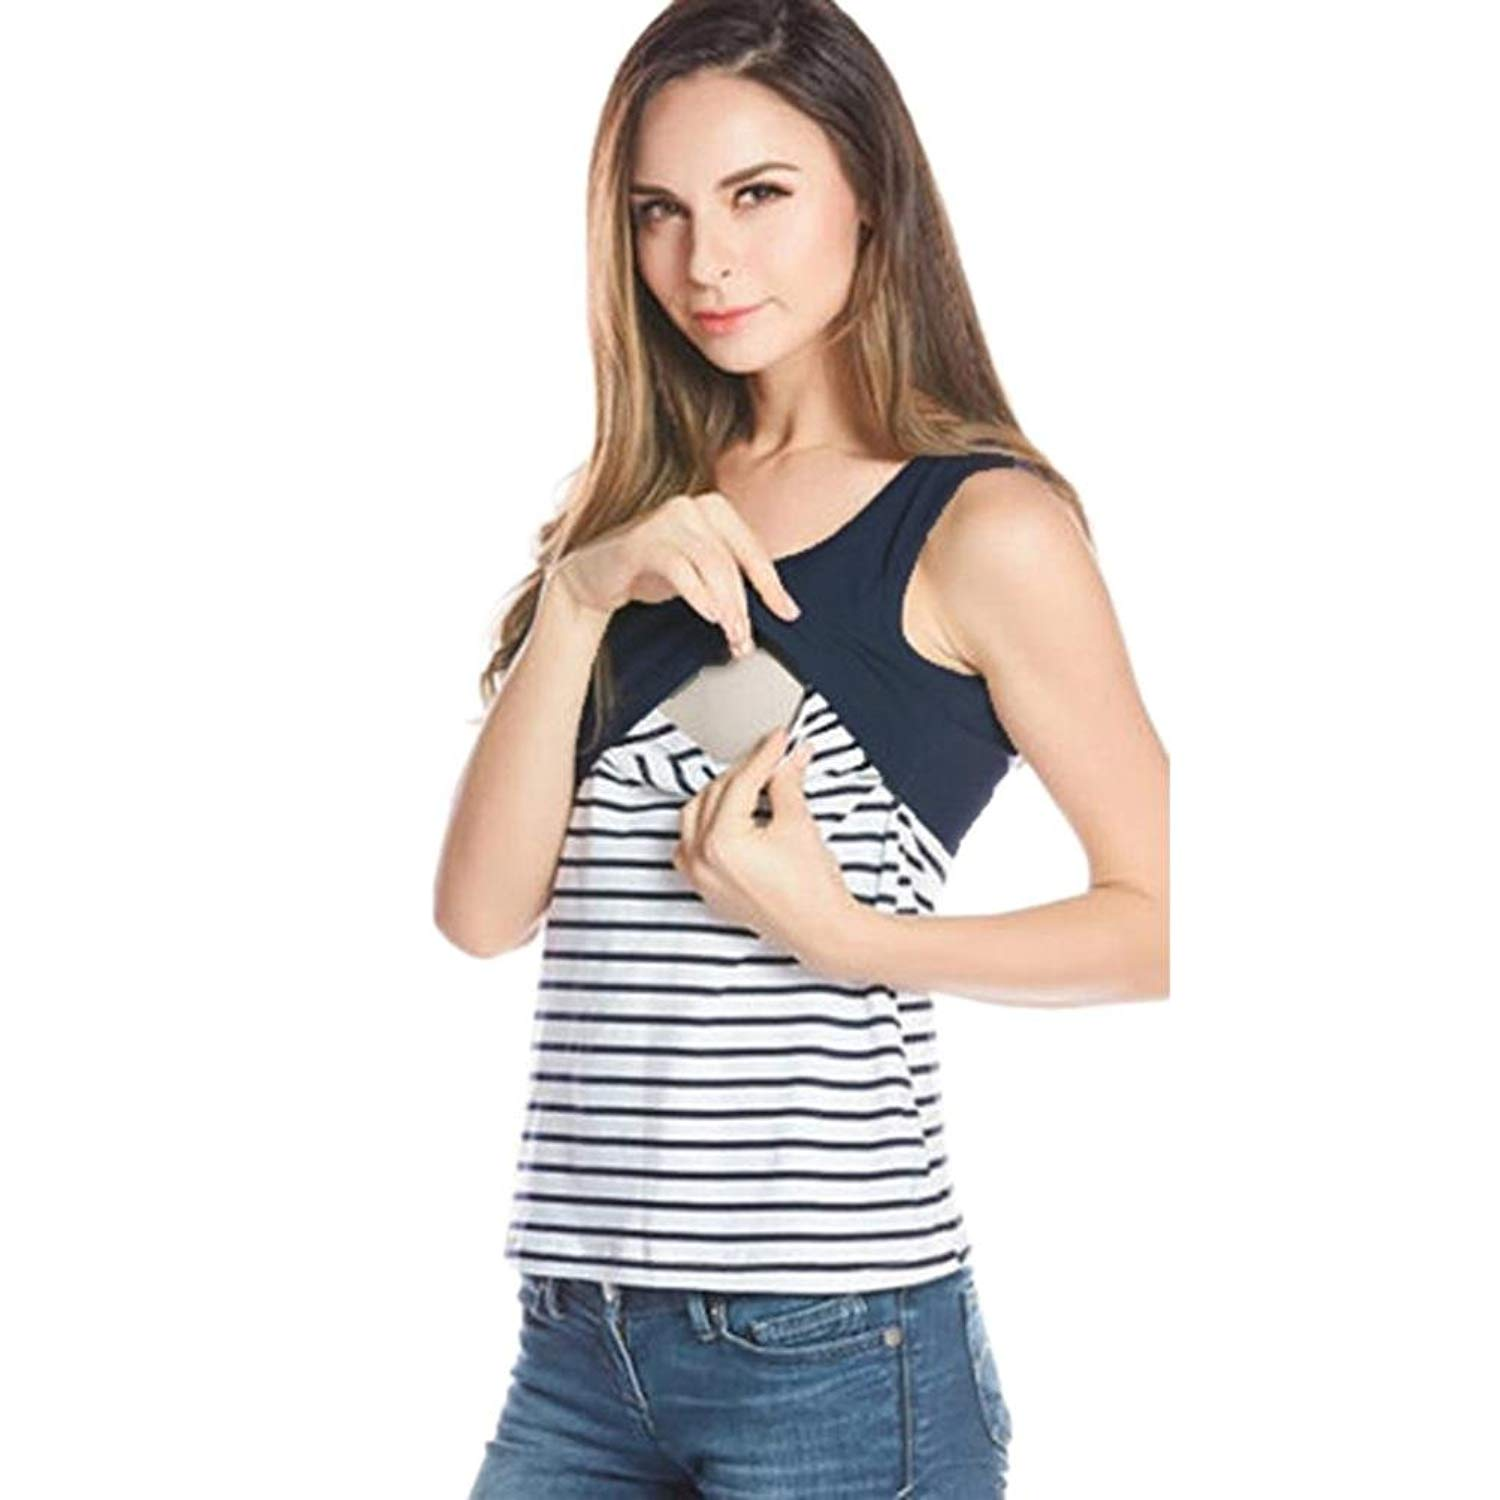 4f3c7c7059259 Get Quotations · Breastfeeding Blouse,Women Maternity Nursing Tank Tops  Sleeveless Striped Breastfeeding Clothes